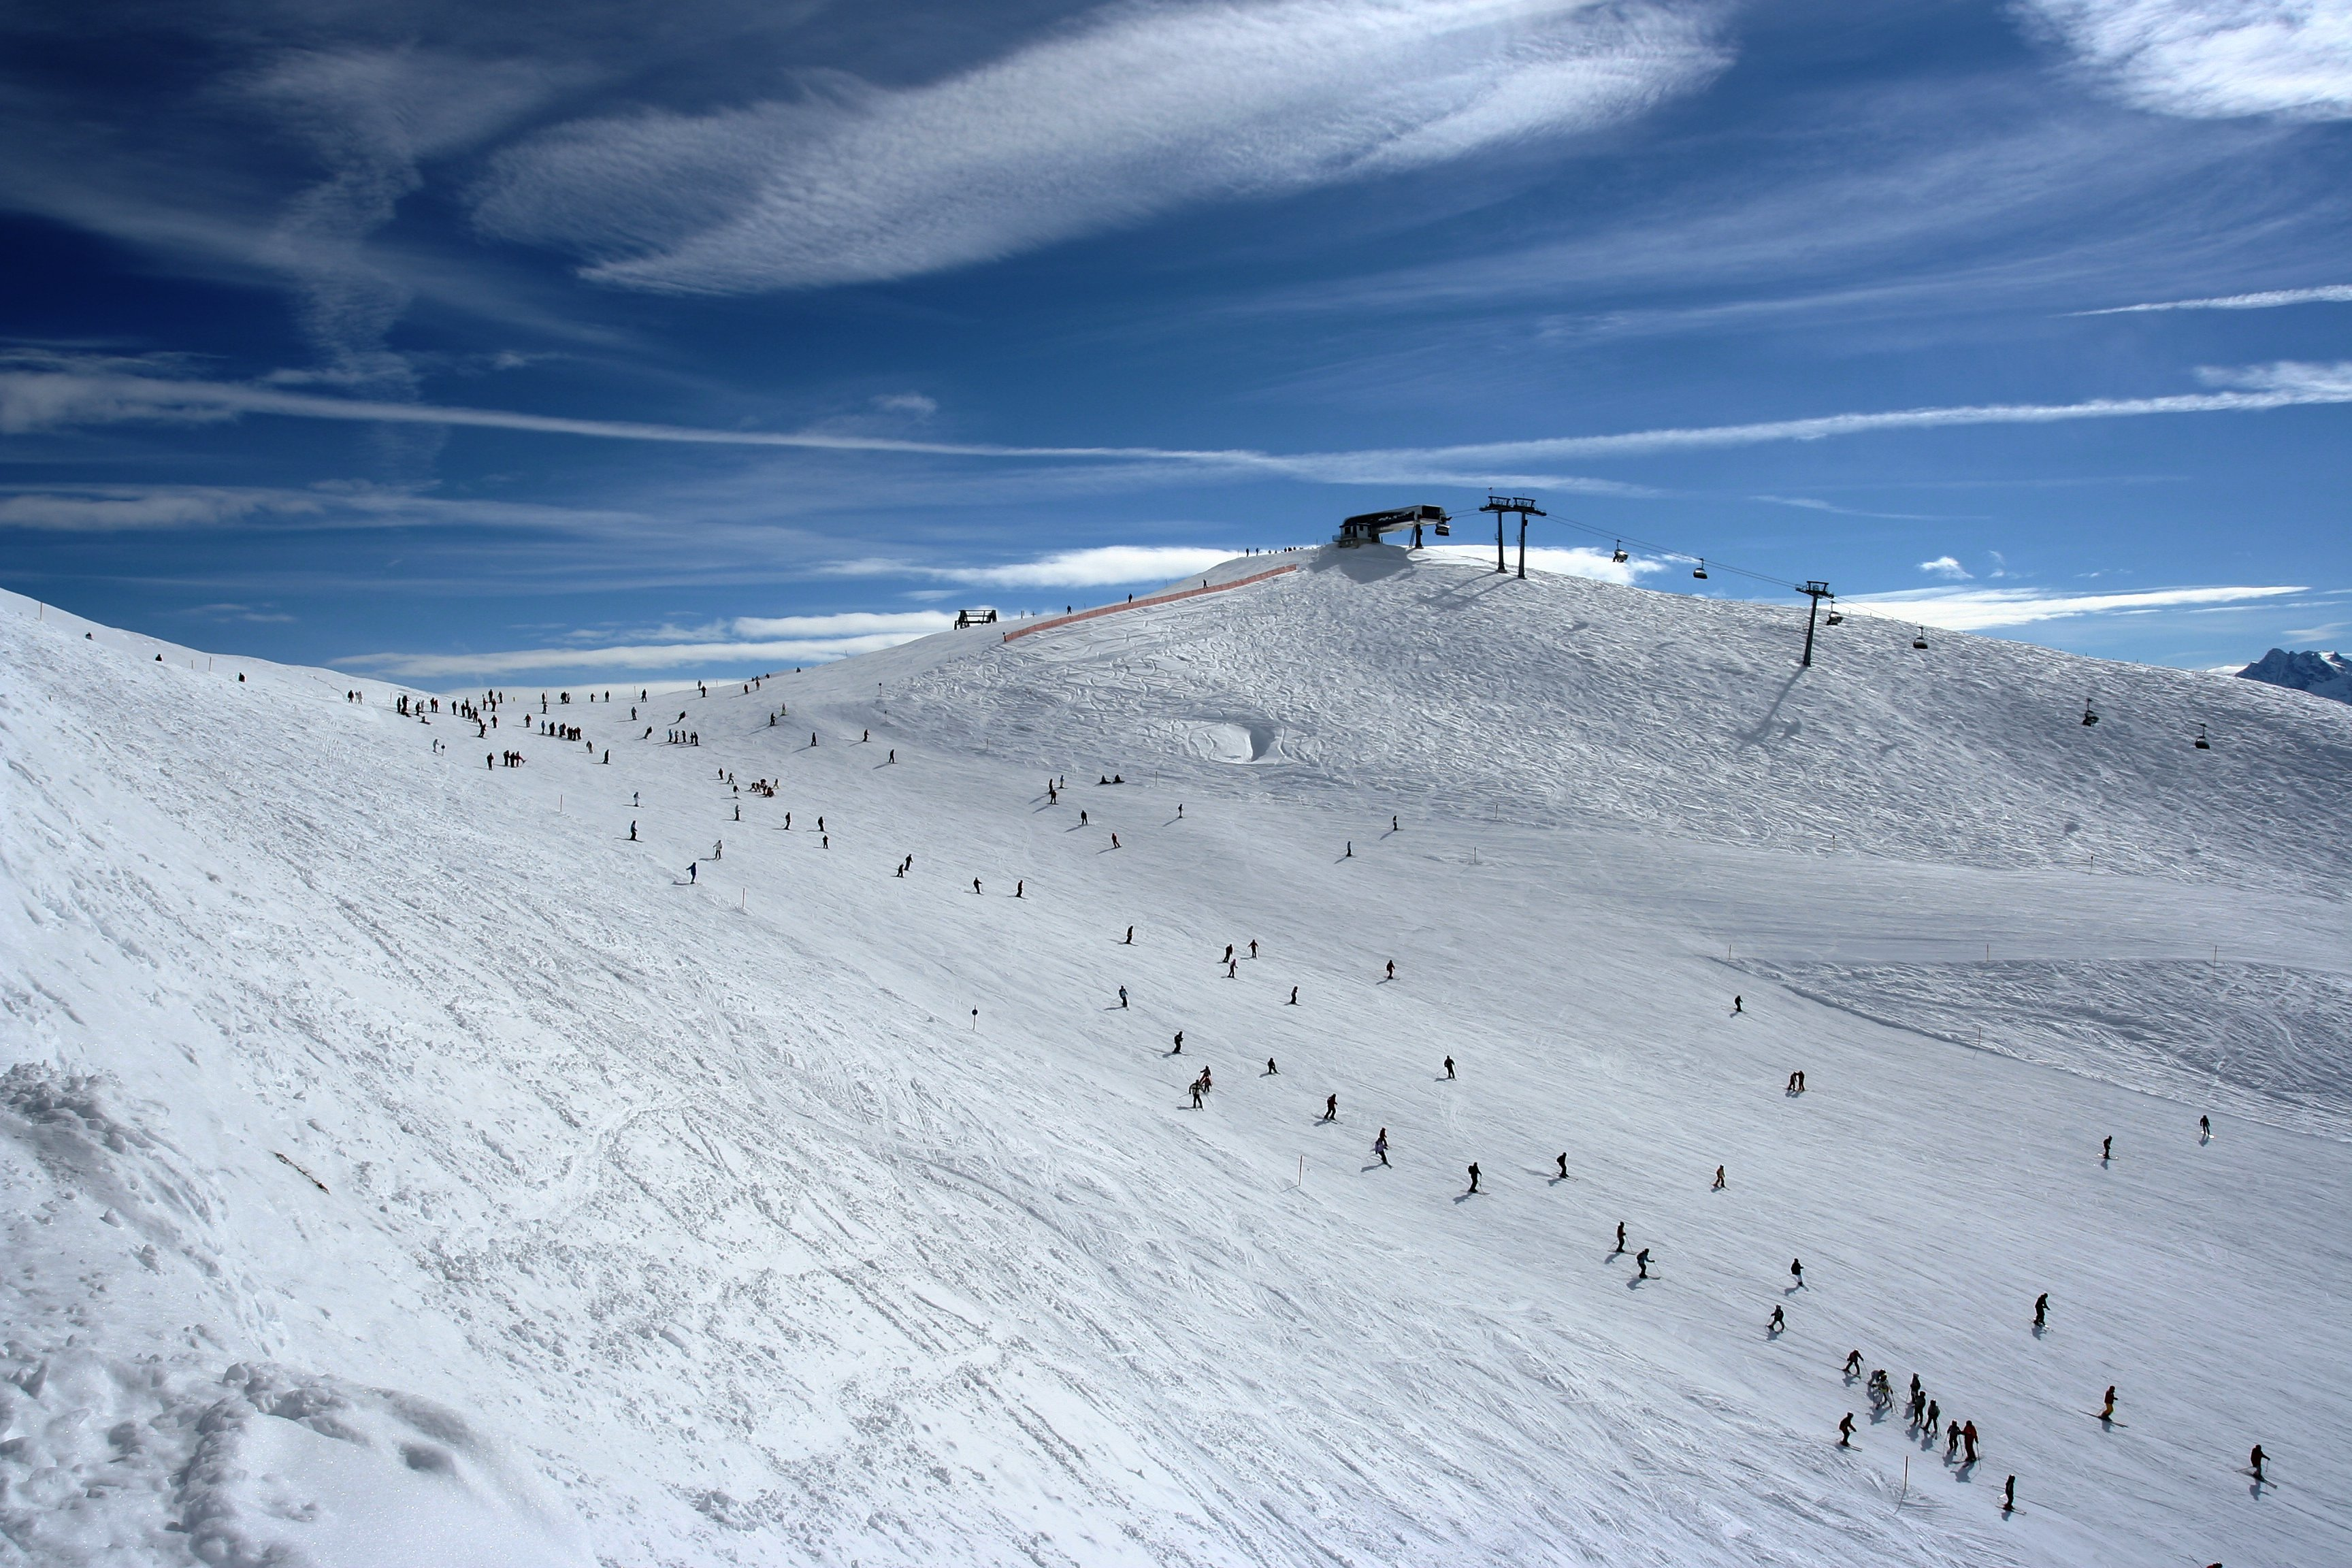 https://upload.wikimedia.org/wikipedia/commons/7/76/Rastkogel_ski_slope.jpg